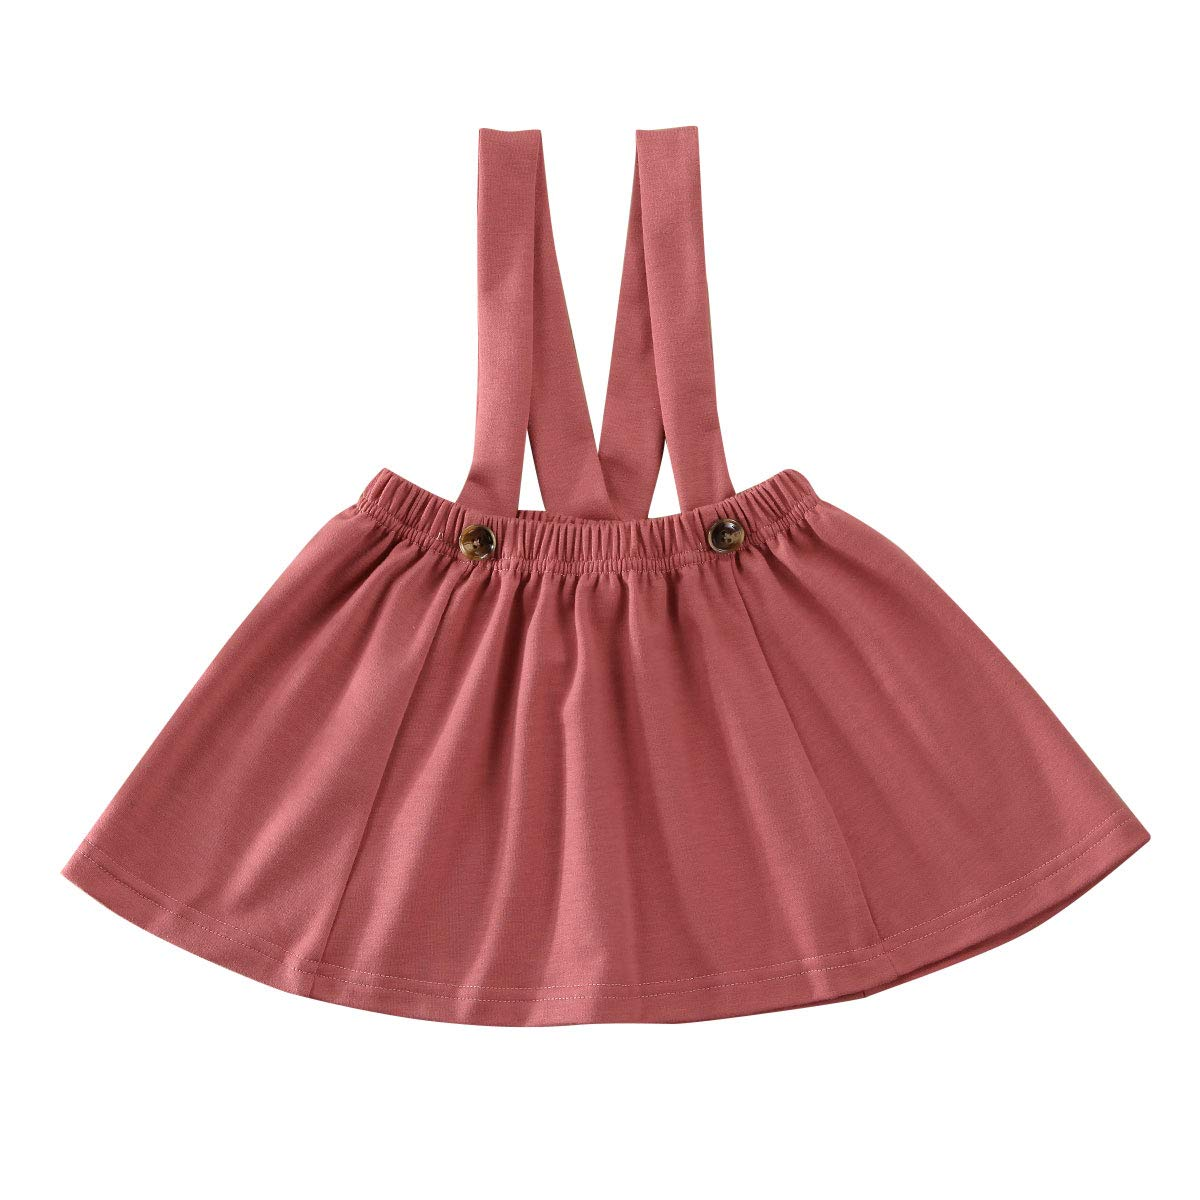 Karuedoo Baby Girls Suspender Skirt Infant Toddler Ruffled Casual Strap Sundress Summer Outfit Clothes